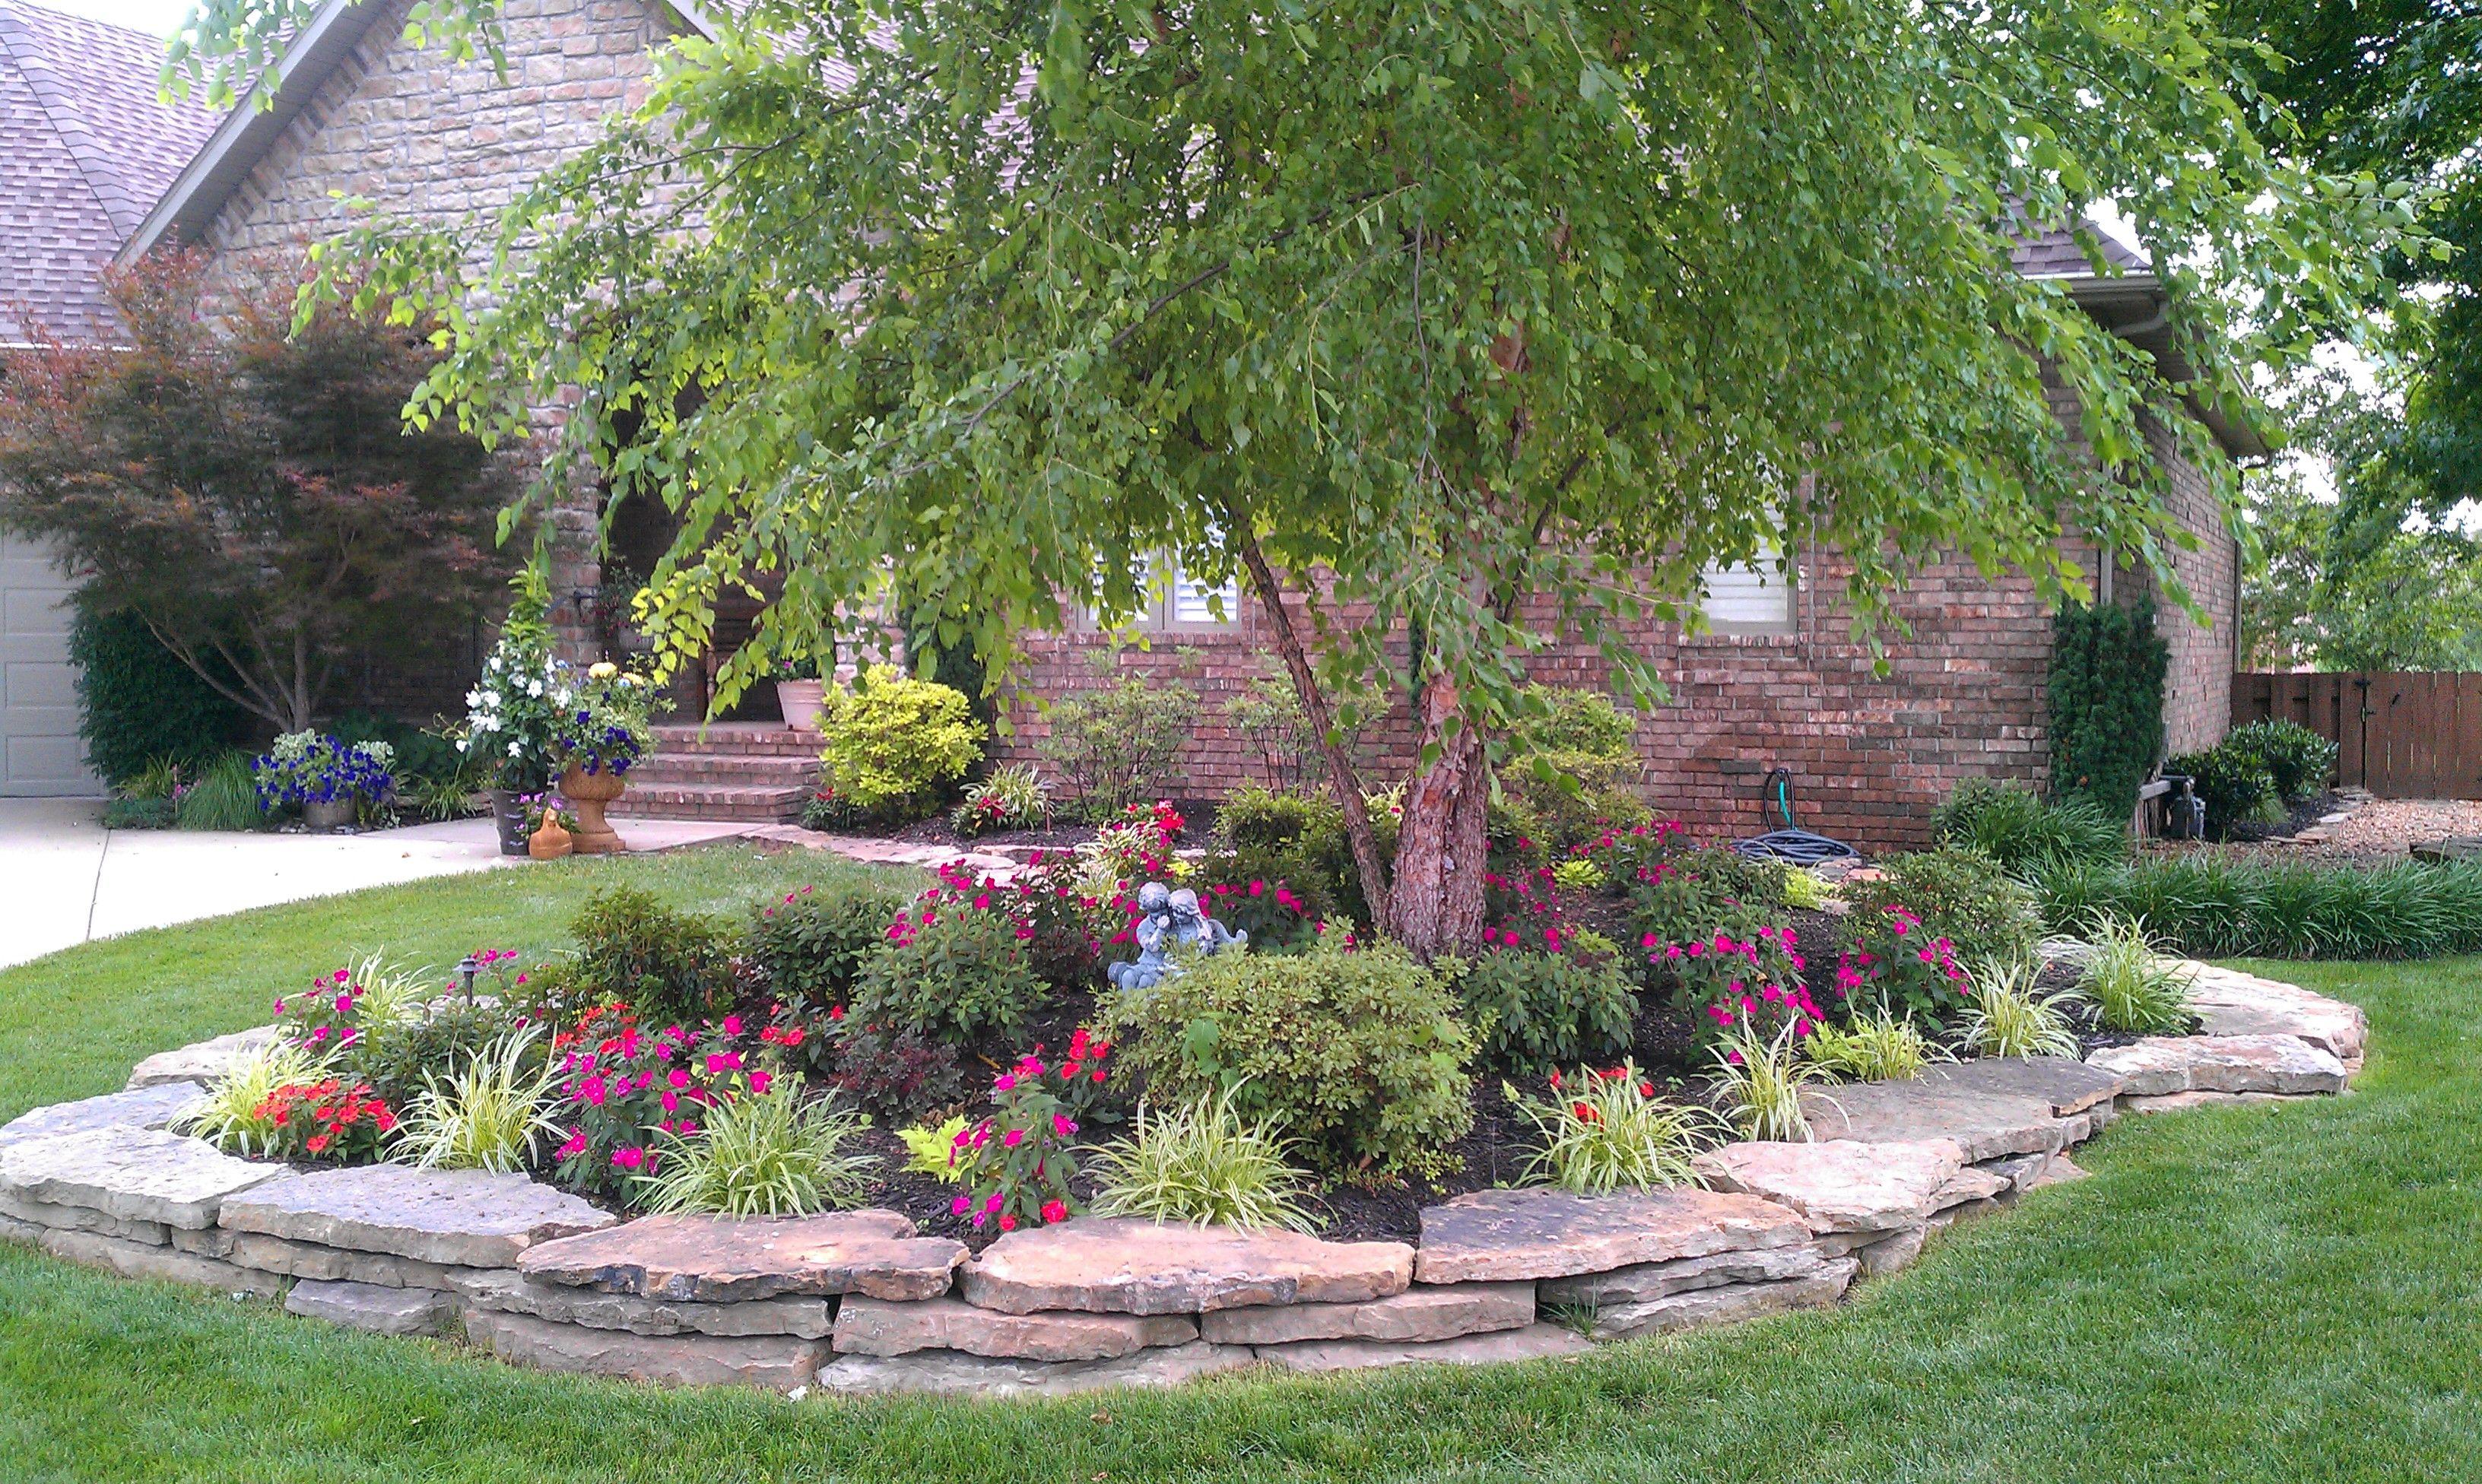 Genial Diy Landscape Design For Beginners